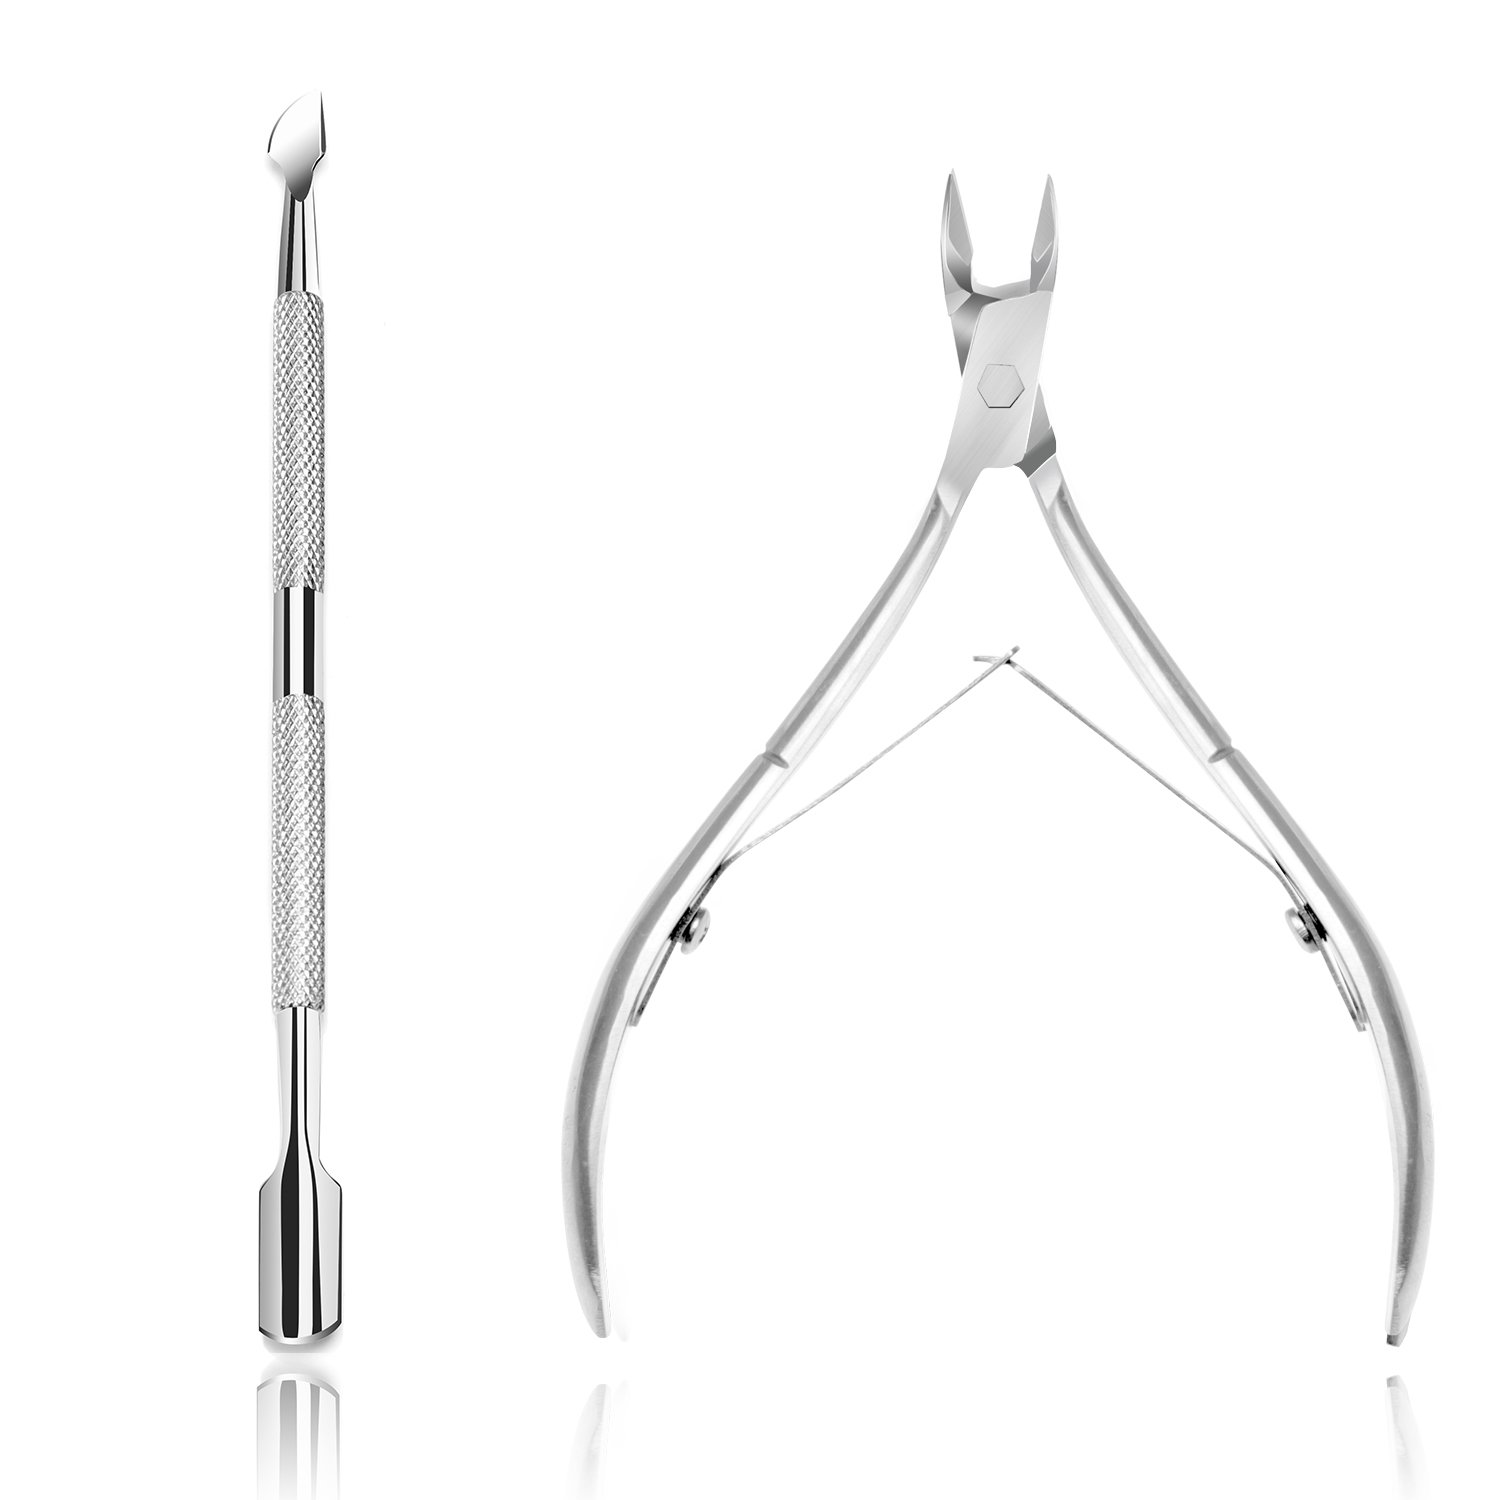 Ejiubas Cuticle Pusher Cuticle Nipper Stainless Steel Cuticle Trimmer Cuticle Remover Tool Set for Fingernails and Toenails Pedicure Manicure Tools Silver